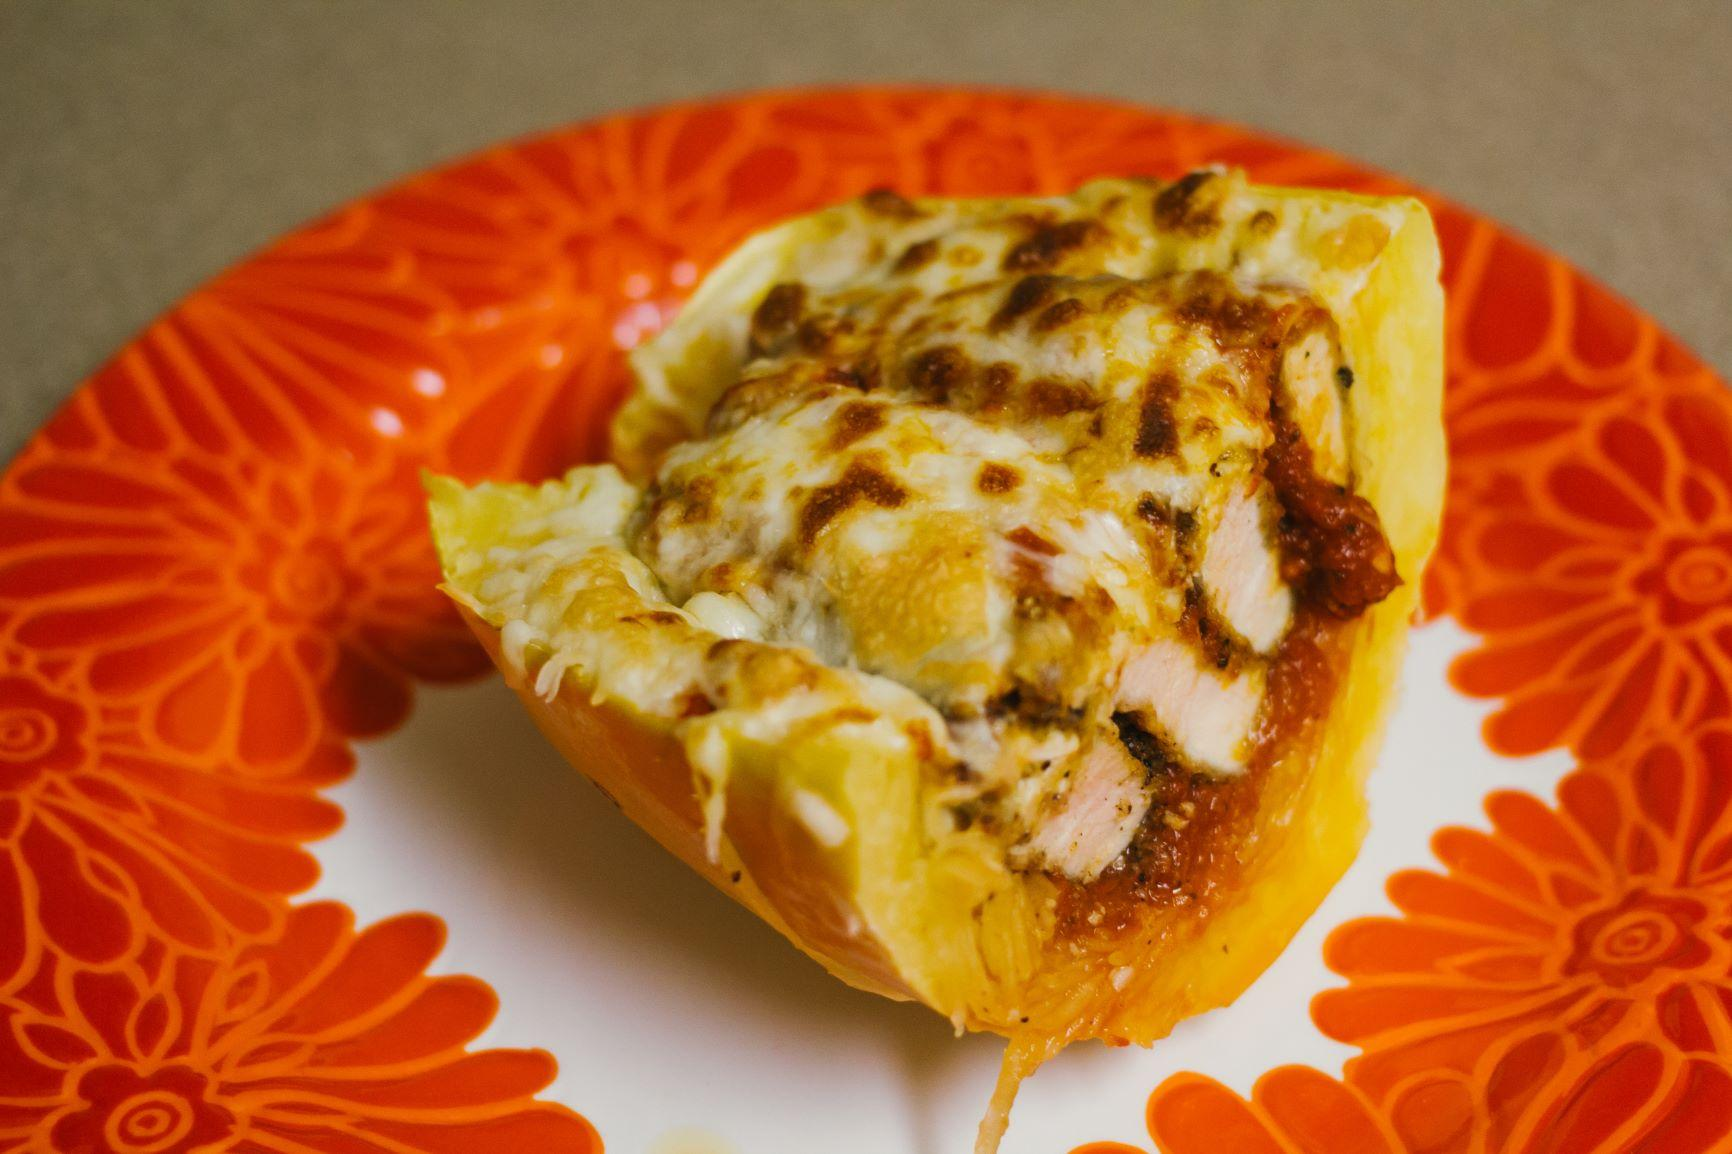 Spaghetti Squash Chicken Melted Sliced